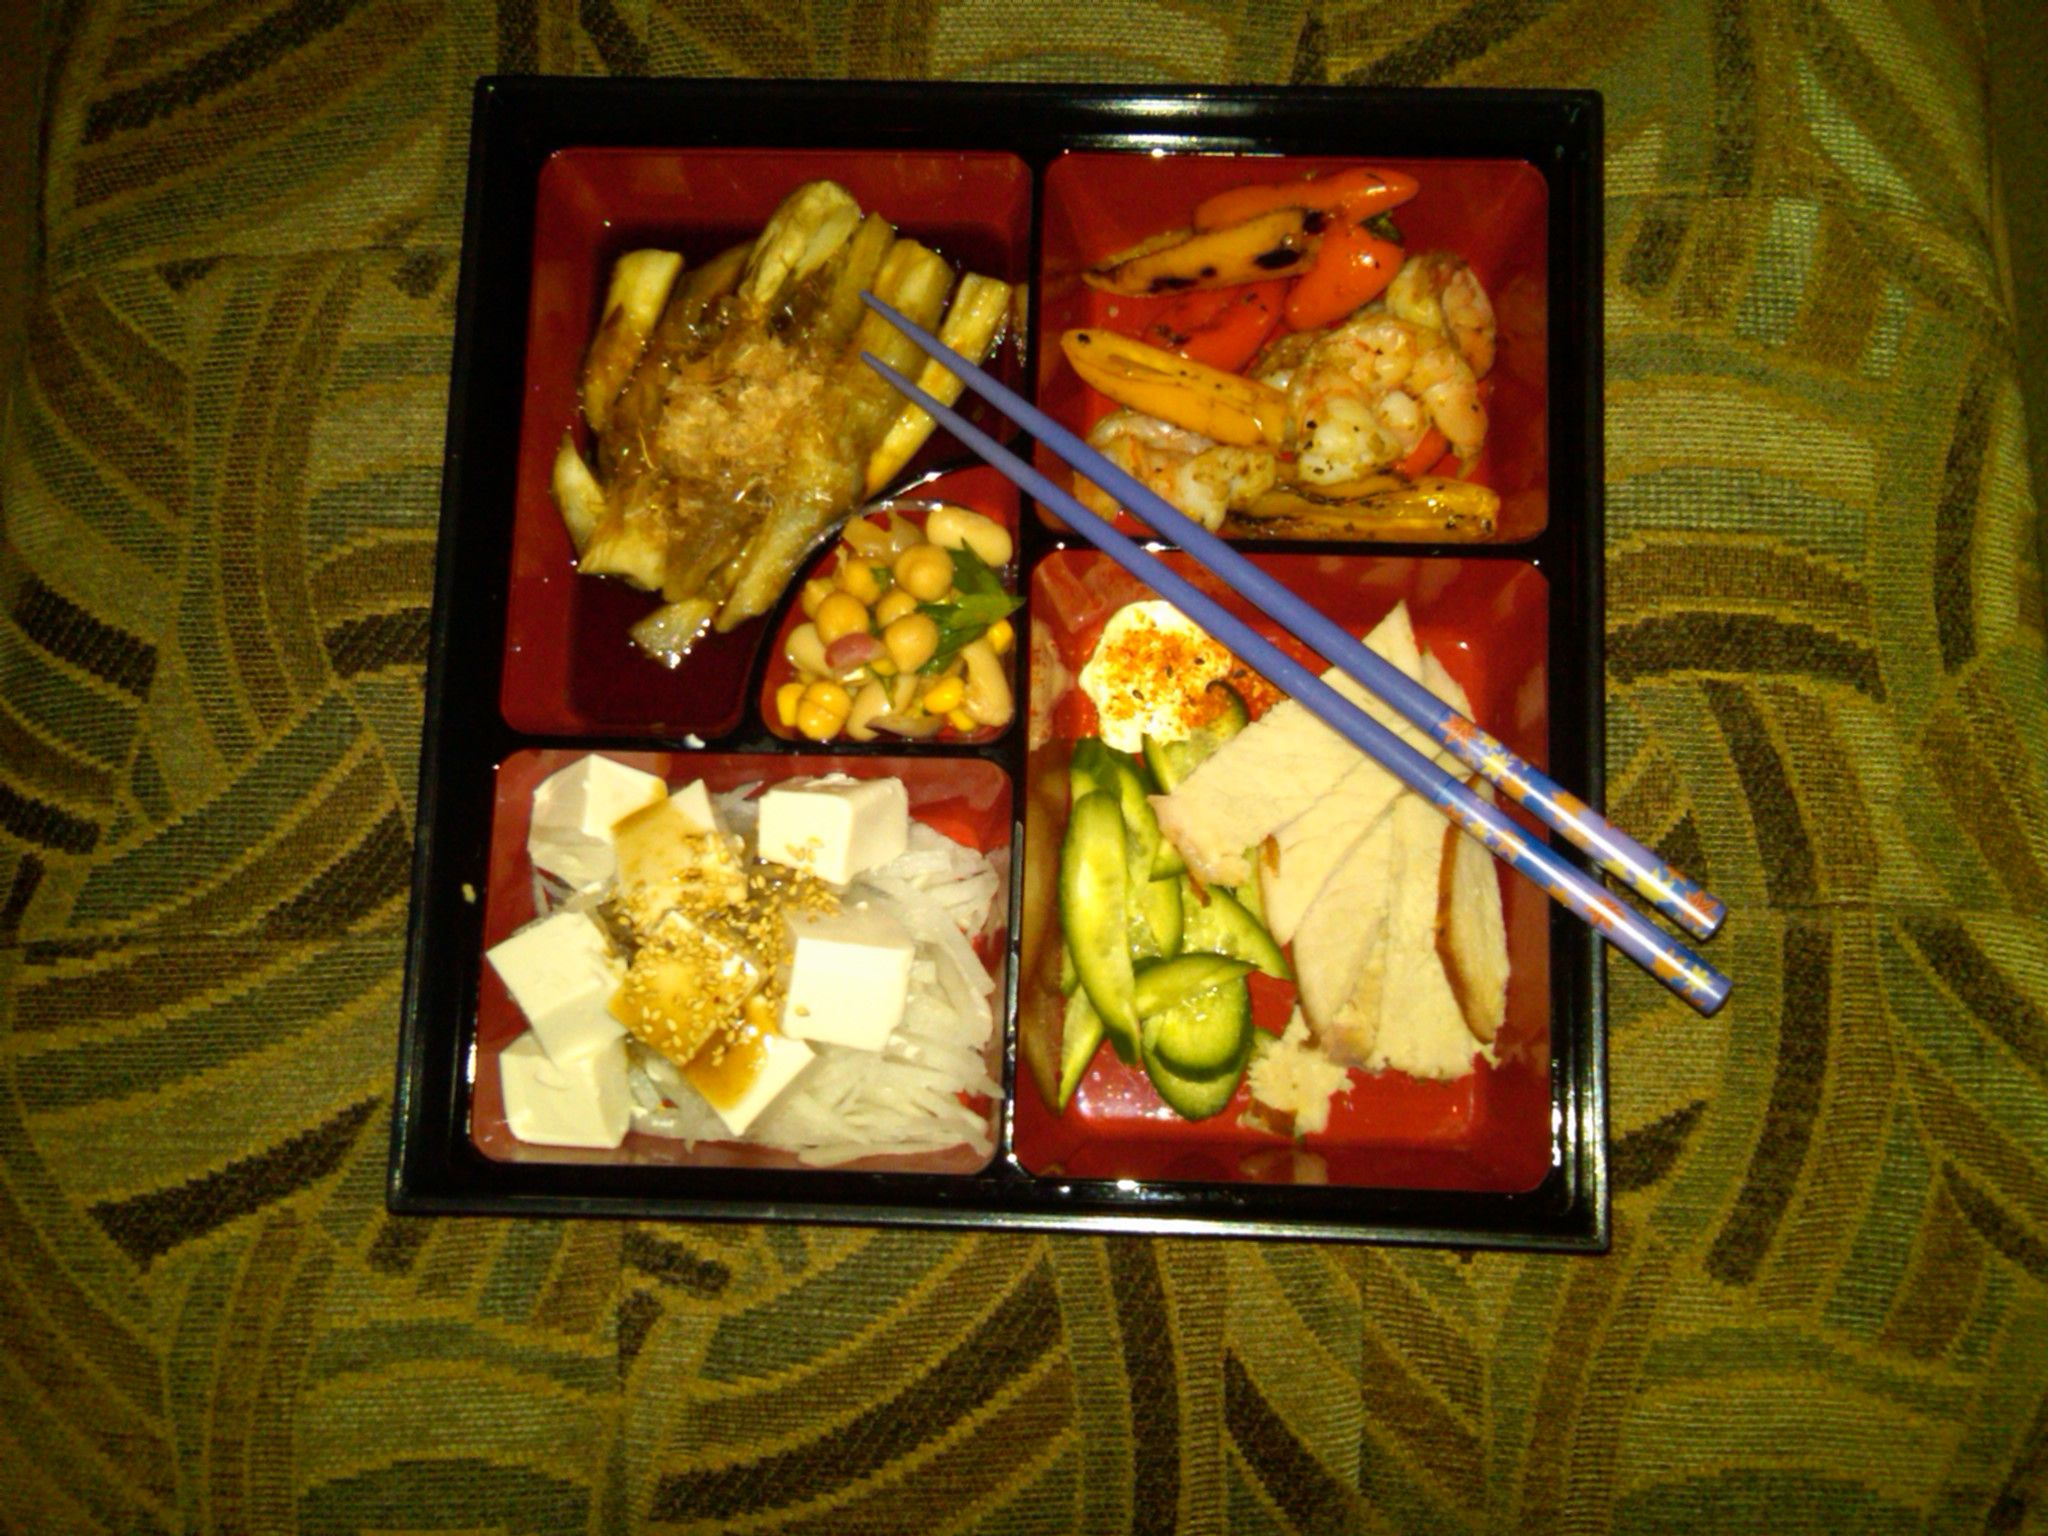 Delicious Bento Box that Shin made me for dinner last night...it was delicious!!